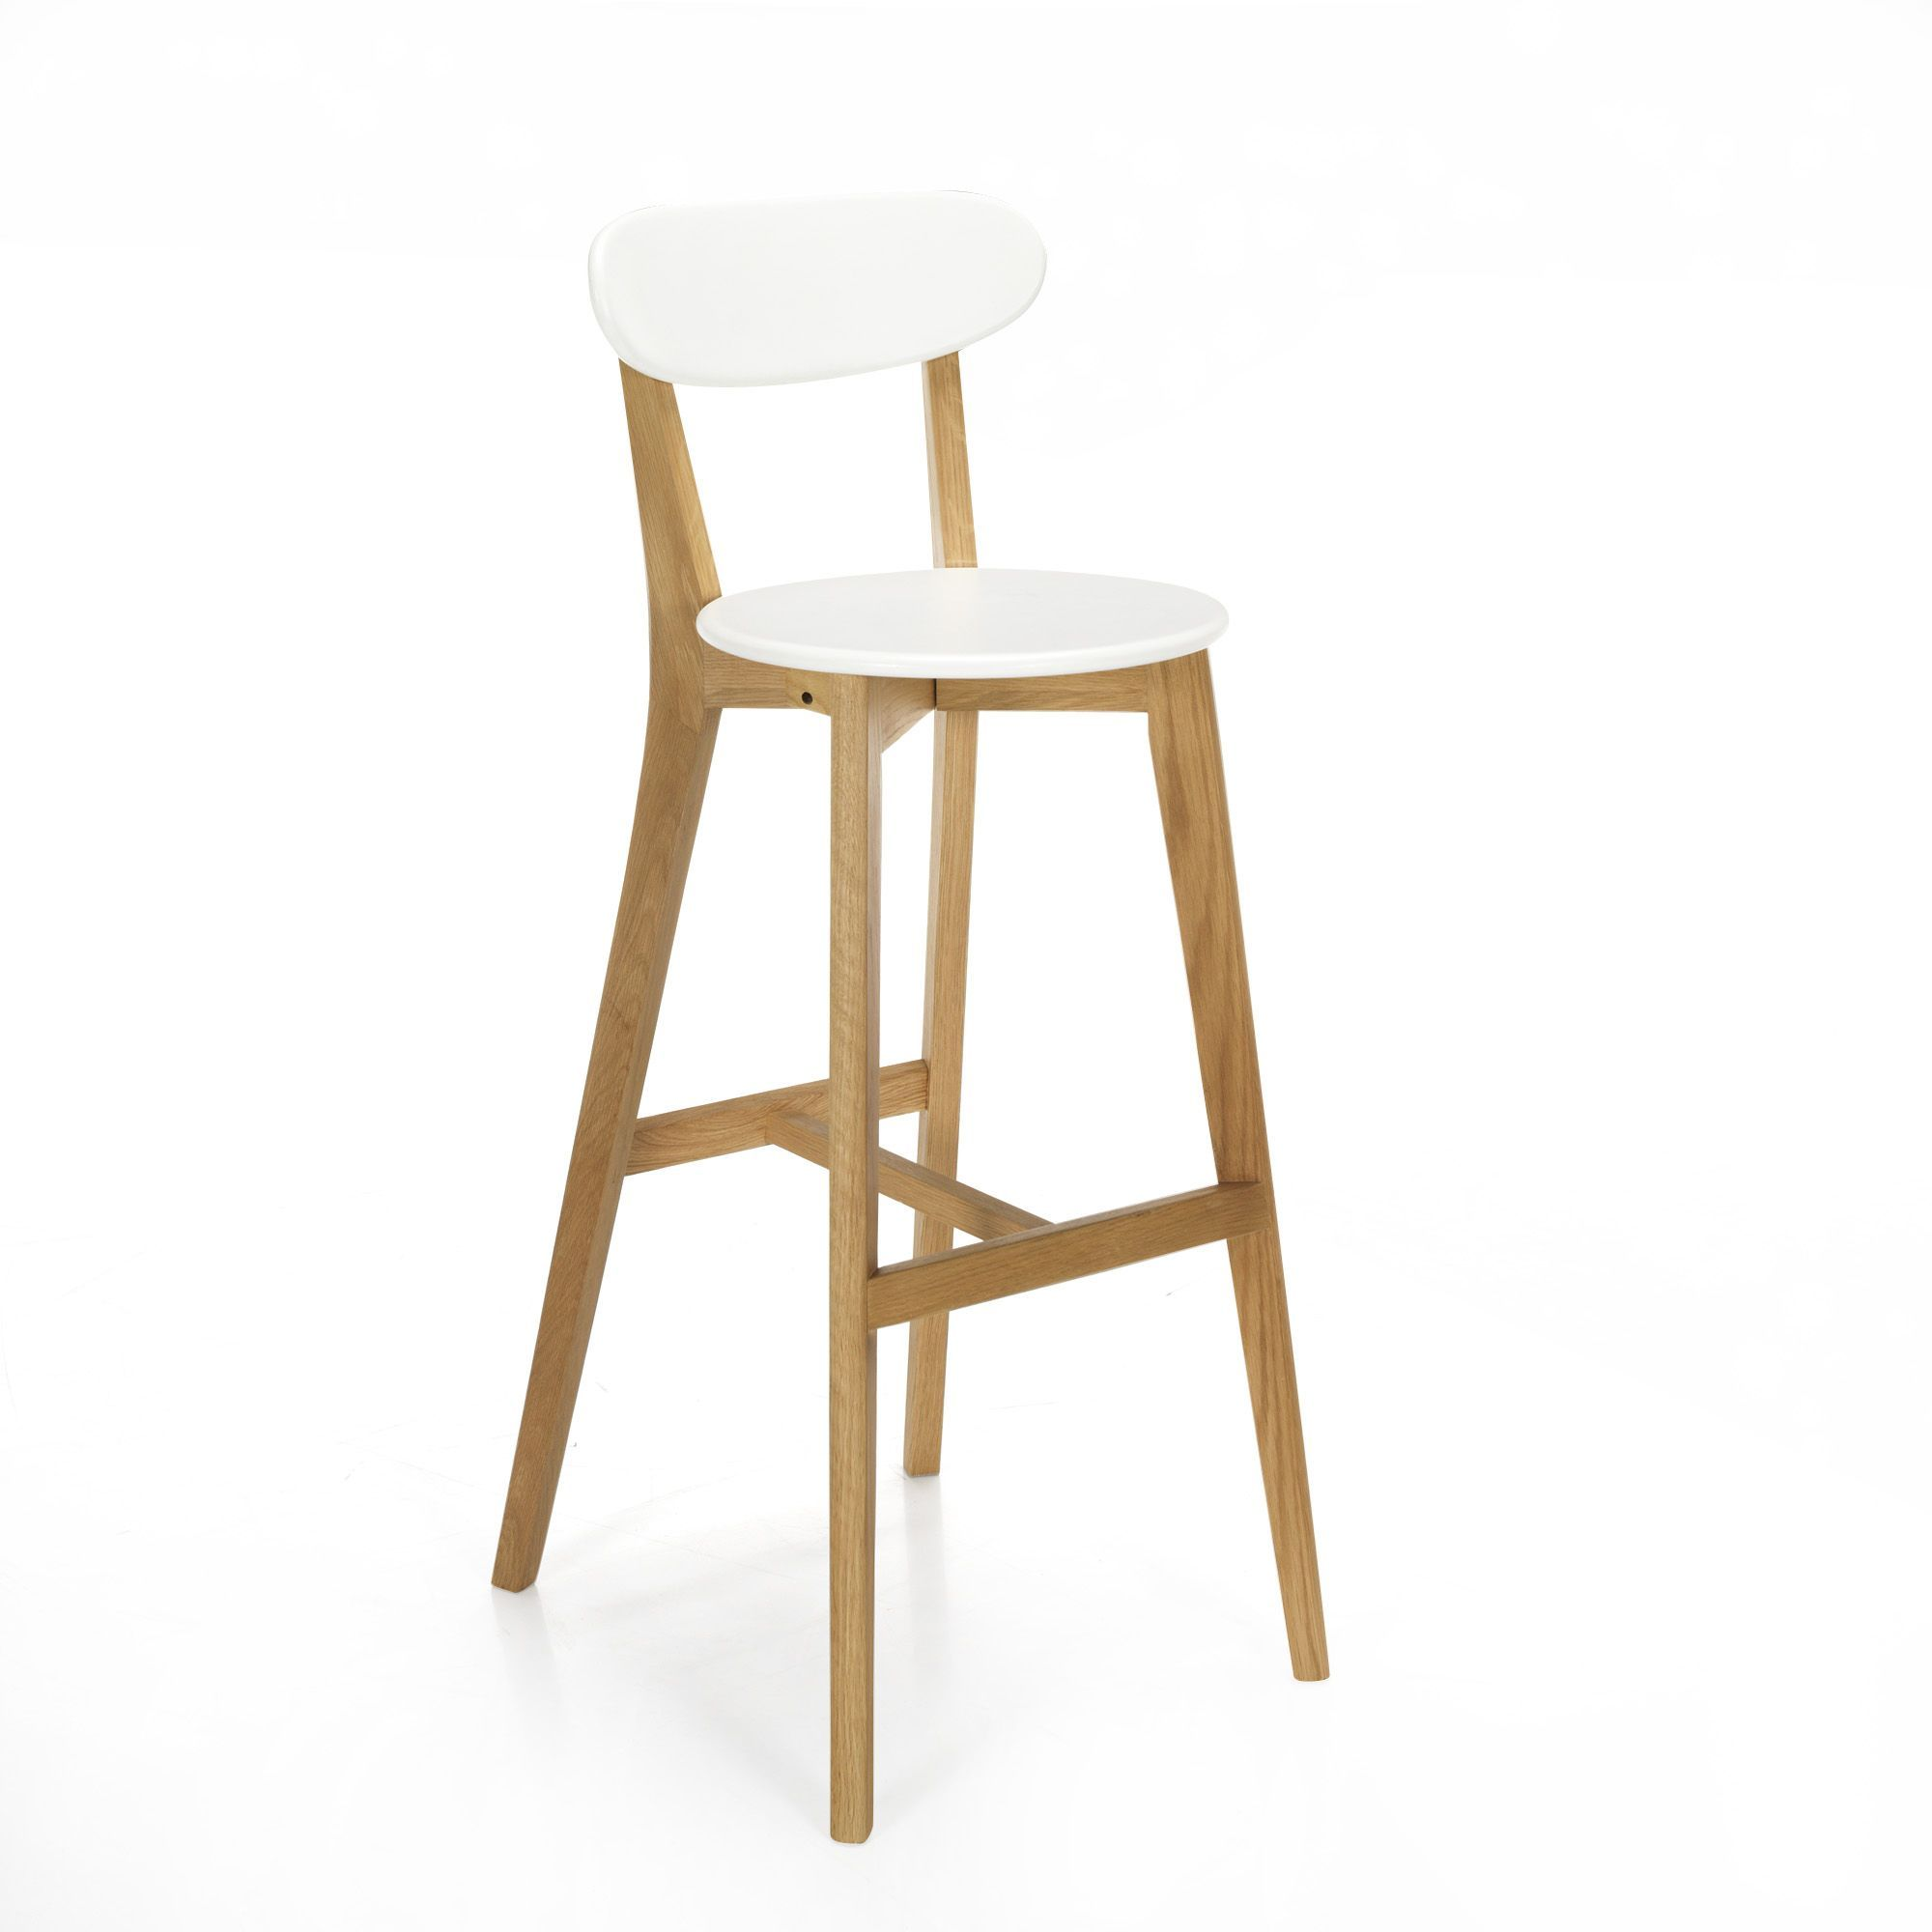 Mateo bain bar design and tables - Ikea tables et chaises ...